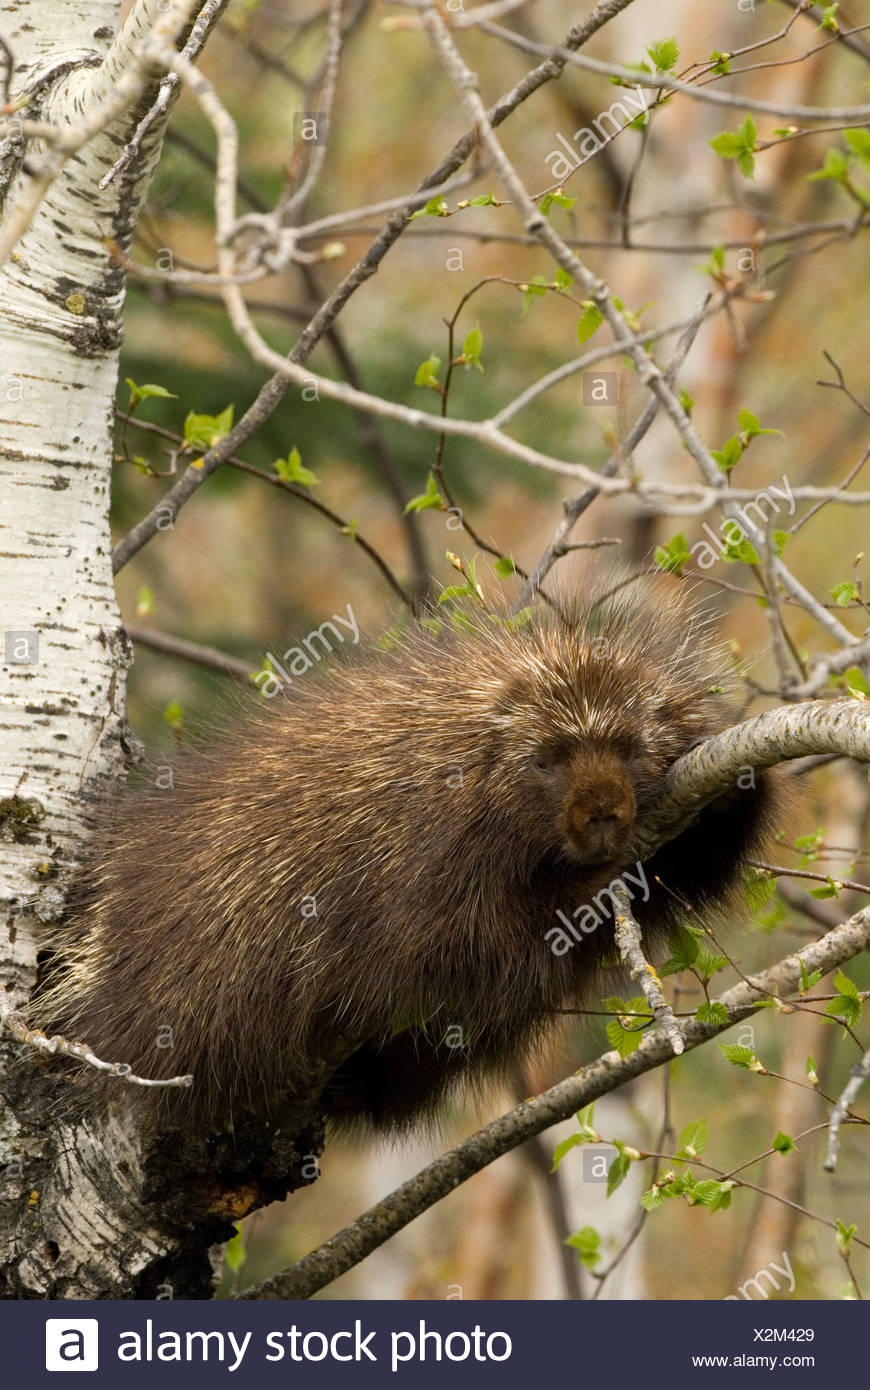 A Porcupine laying in a tree. Stock Photo